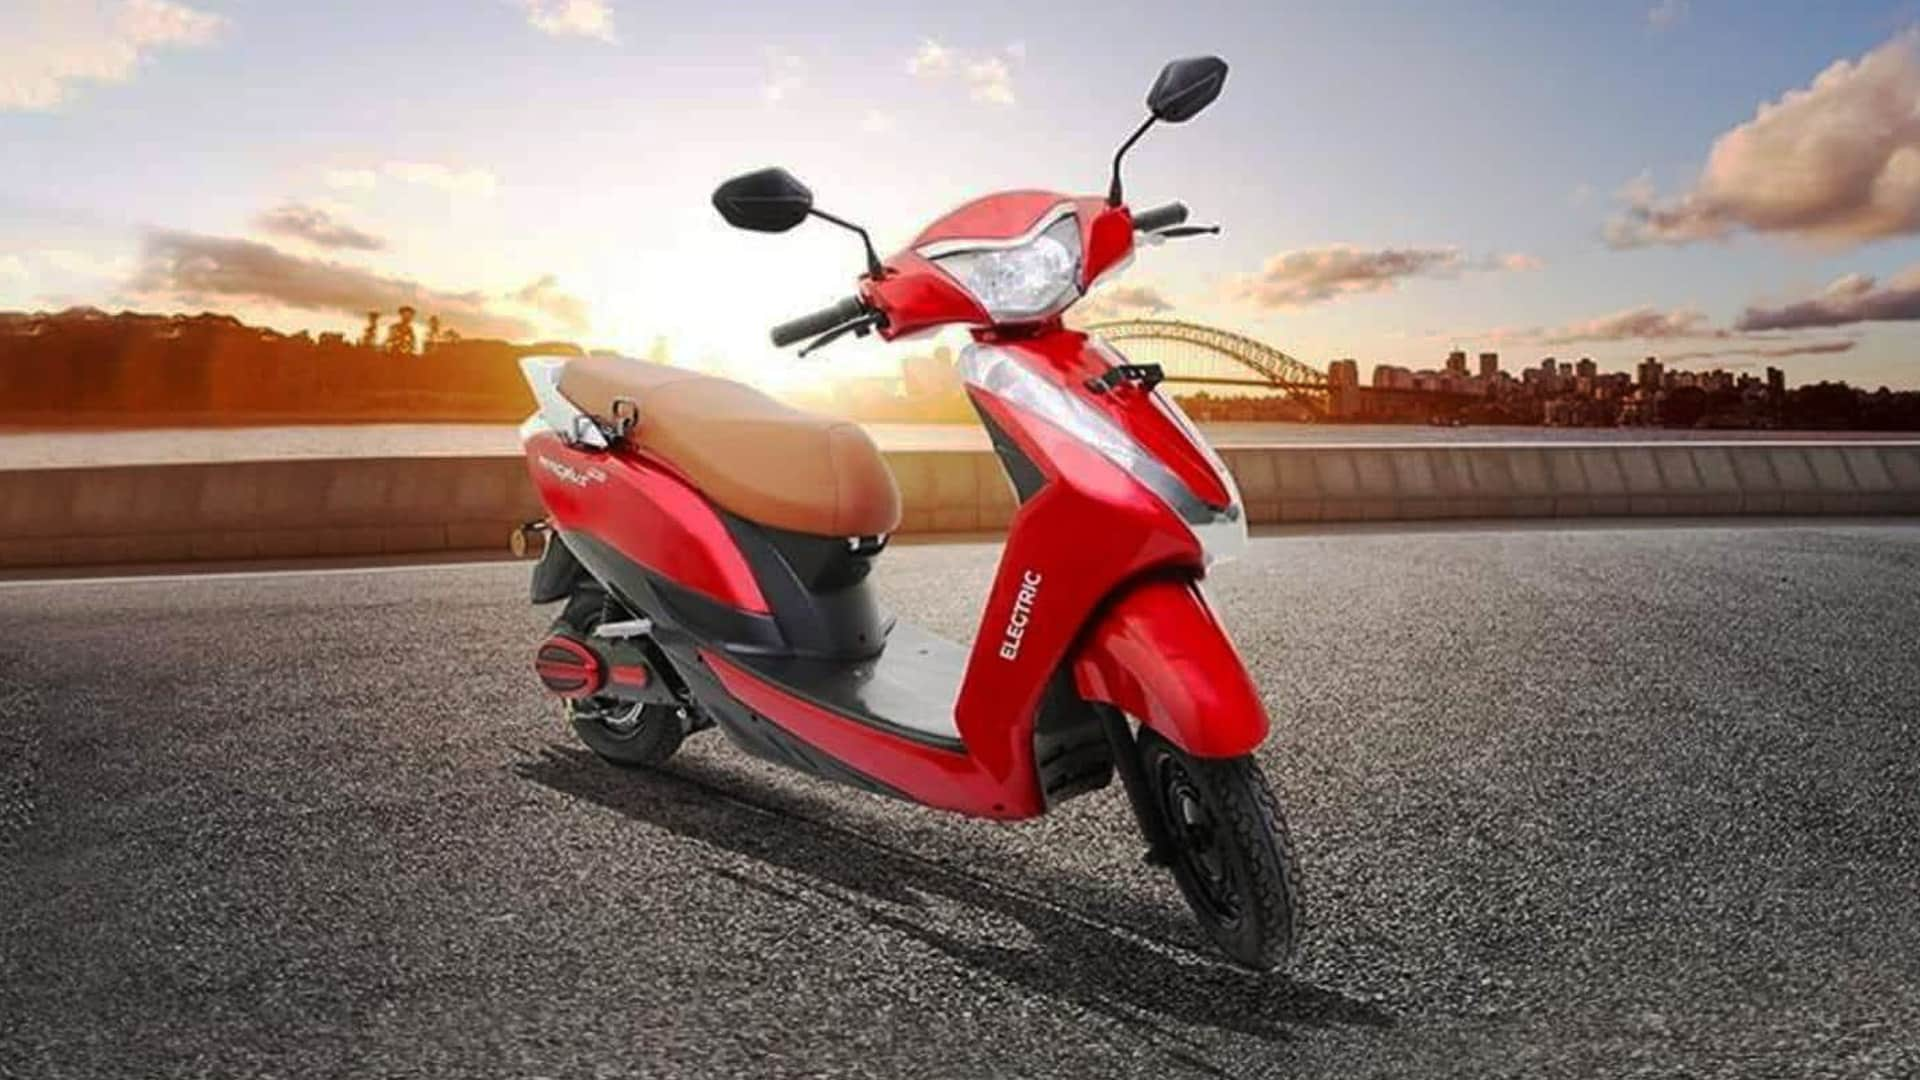 Ampere launches Magnus EX e-scooter with 121 km range at Rs 68,999